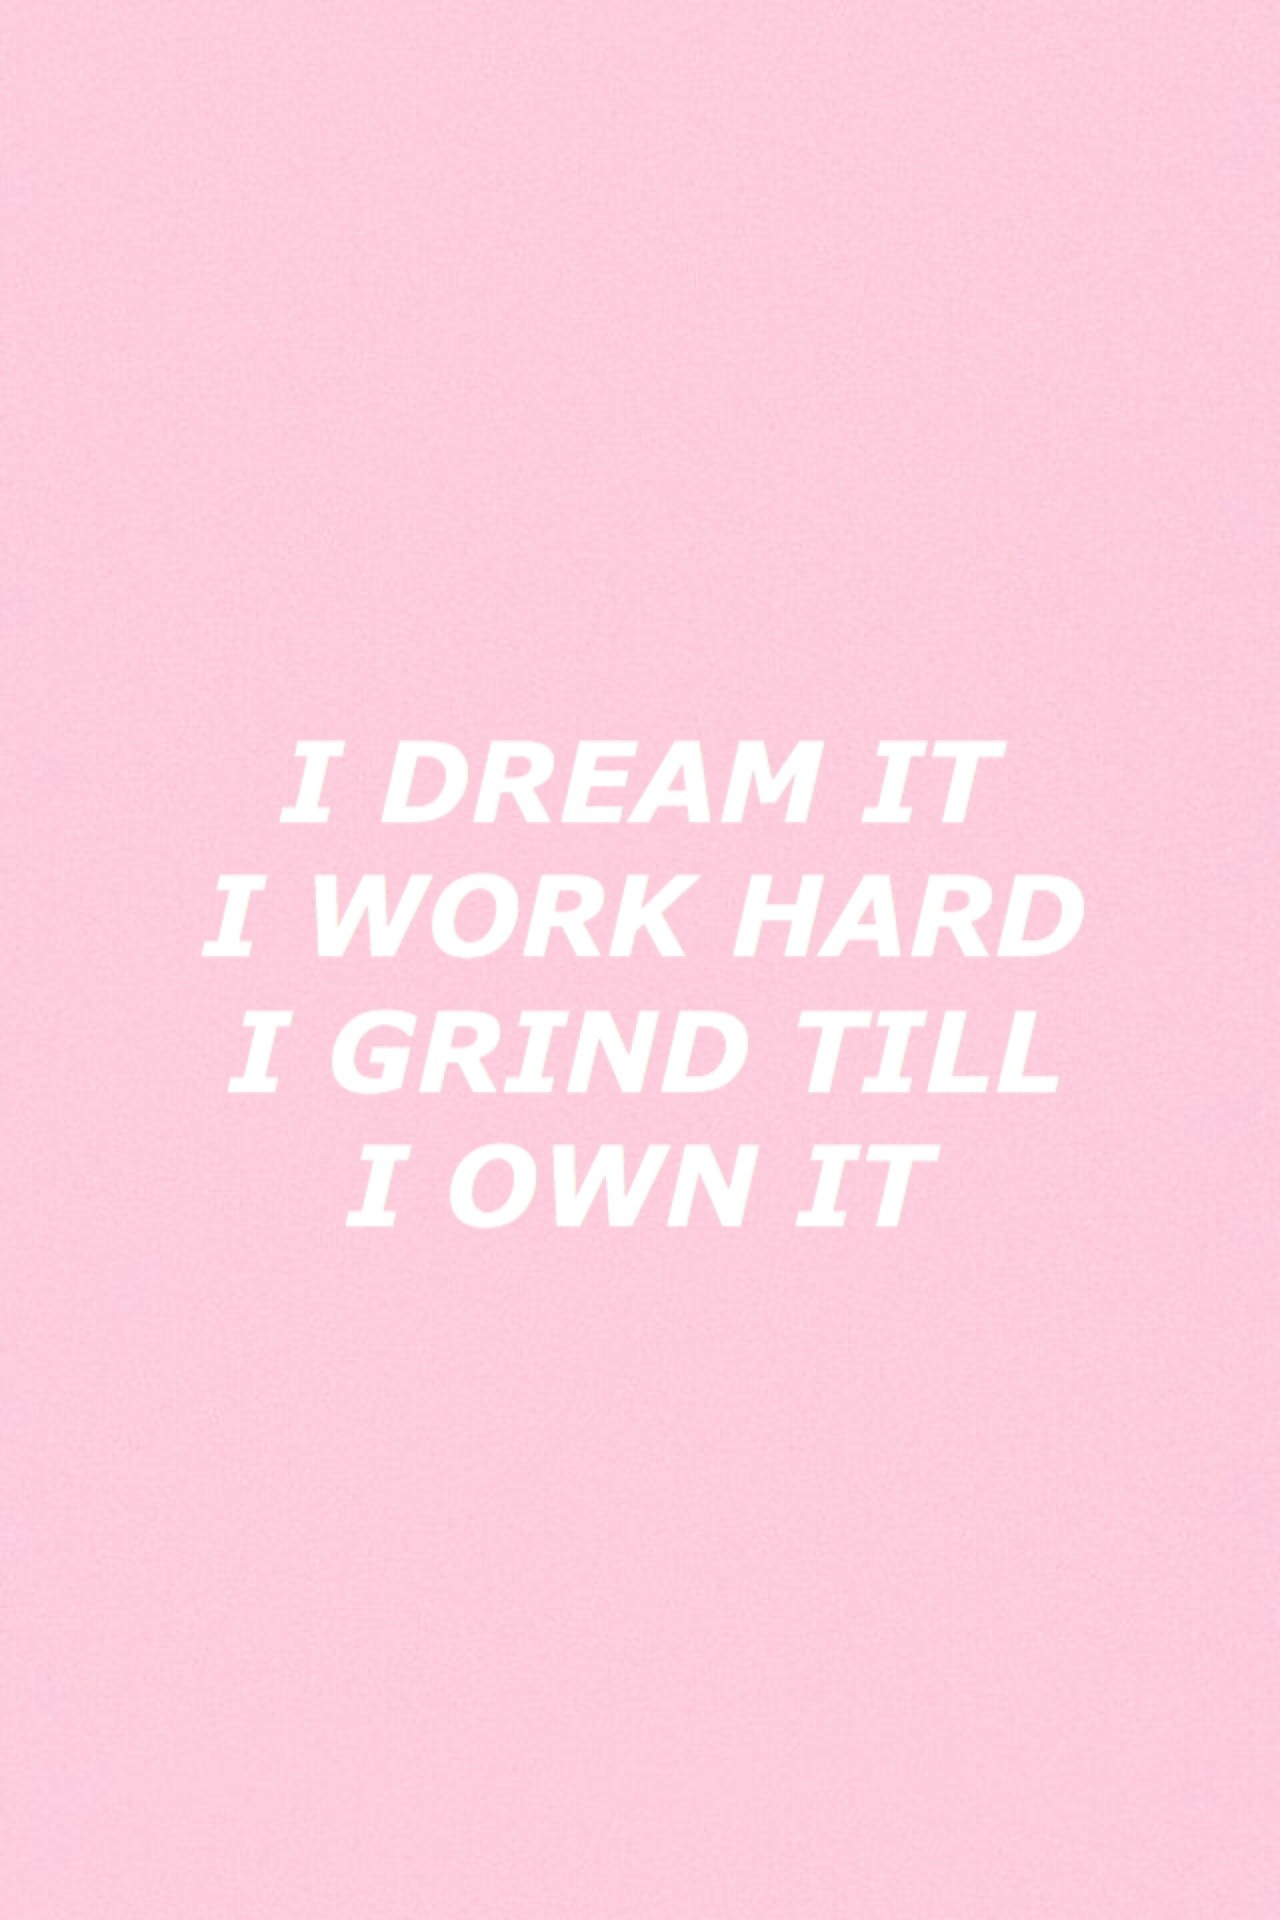 Girl Boss Quotes Wallpaper For Phone Inspirational Wallpaper For Iphone 84 Images